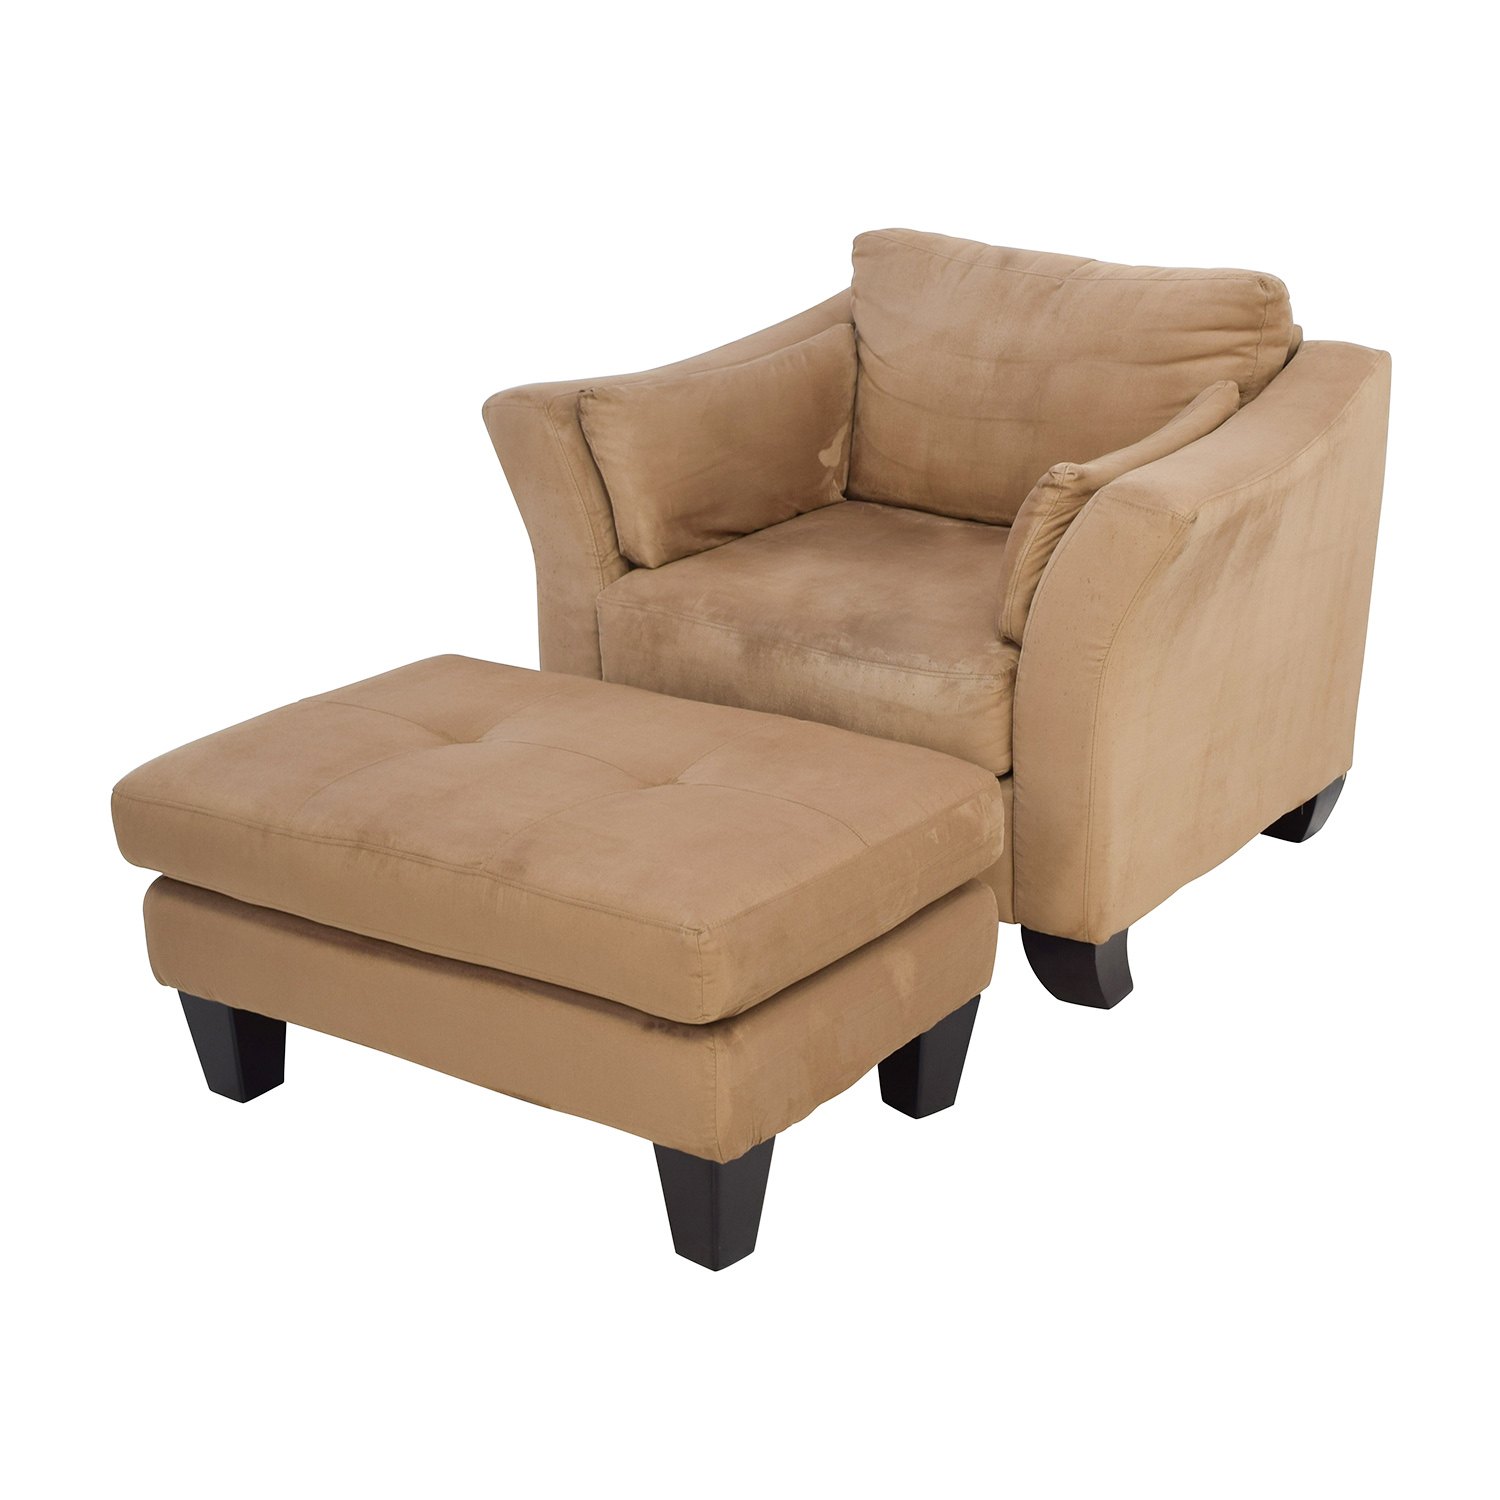 jennifer convertible sofas on sale ashley sofa bed sears 48 off convertibles brown